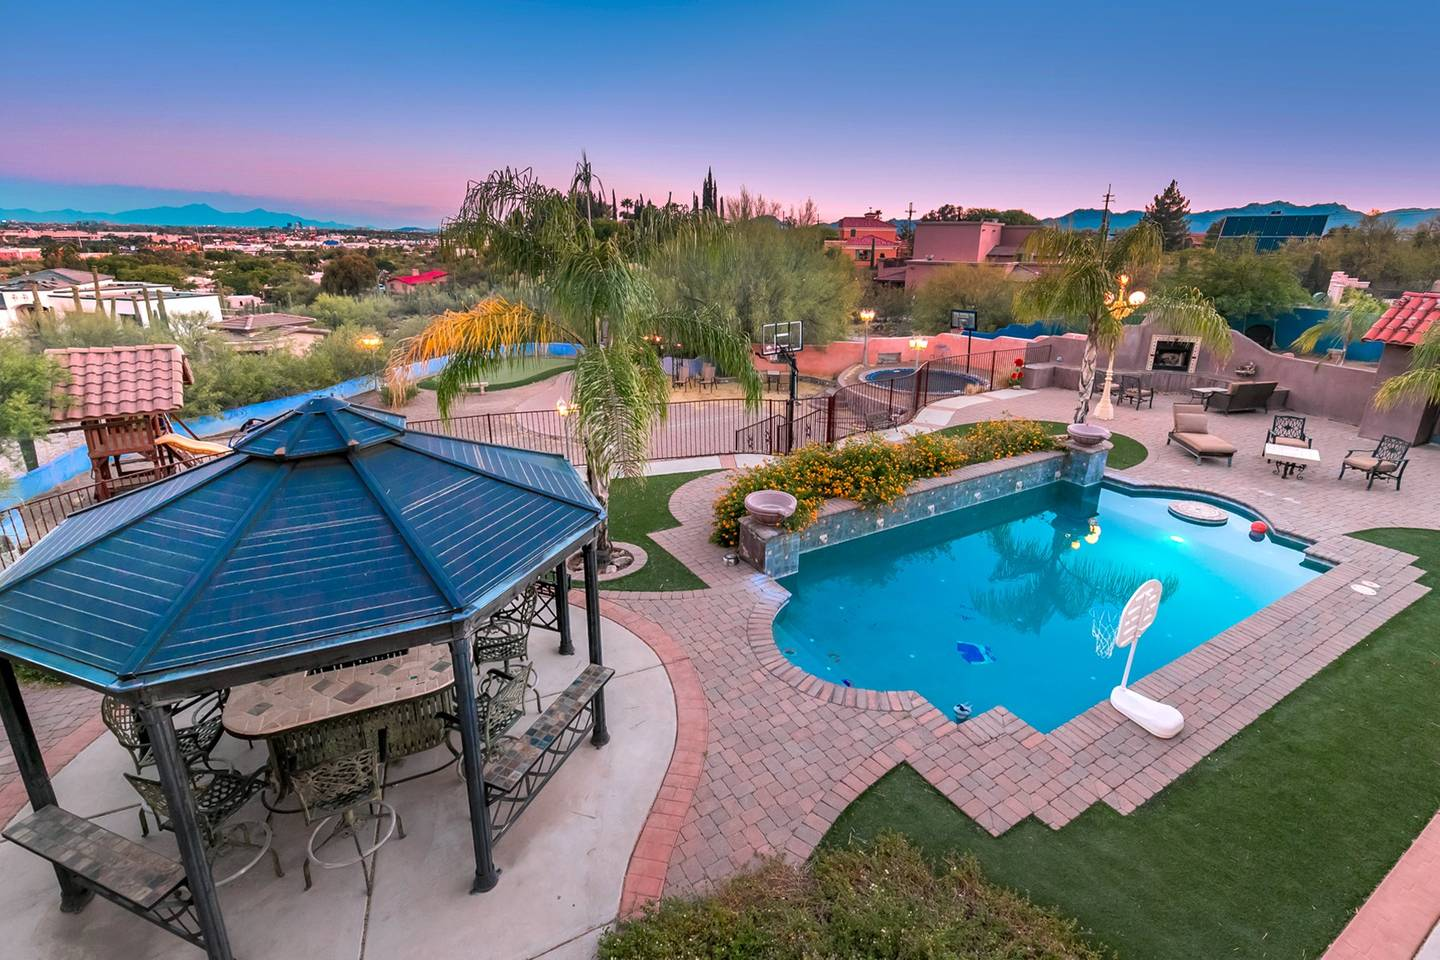 airbnb mansion in the foothills Tucson arizona